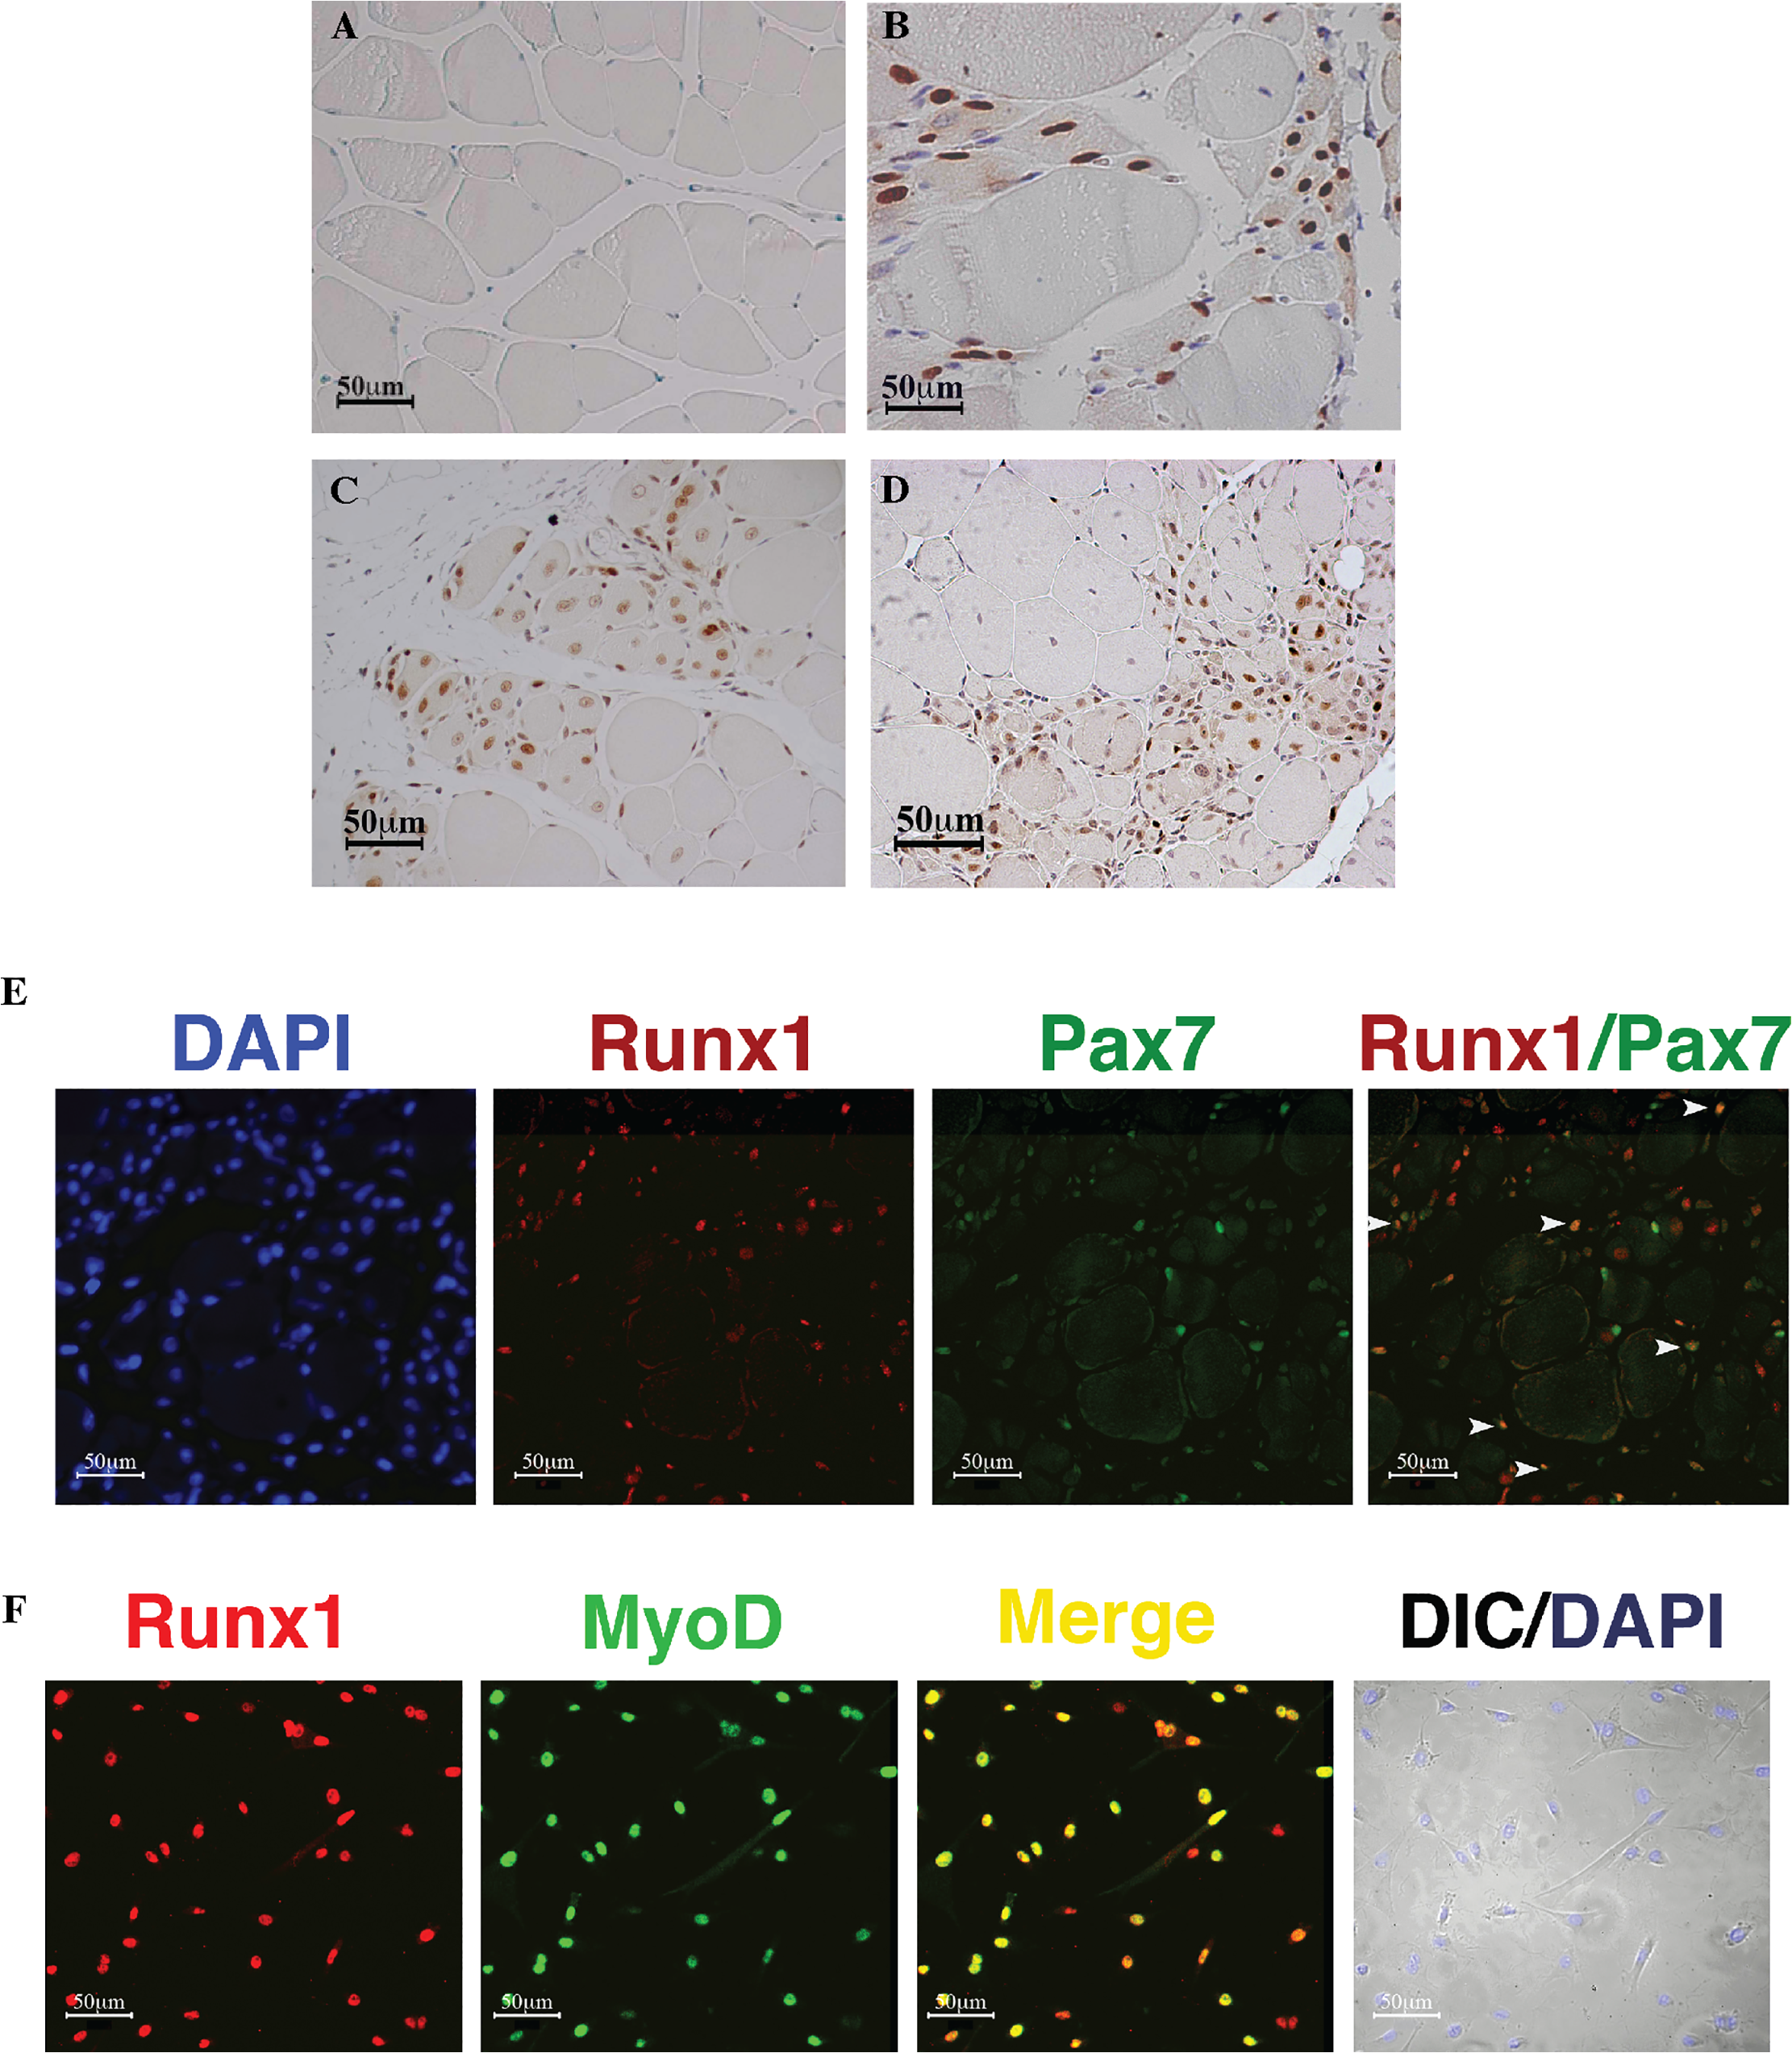 Runx1 expression in response to muscle damage.